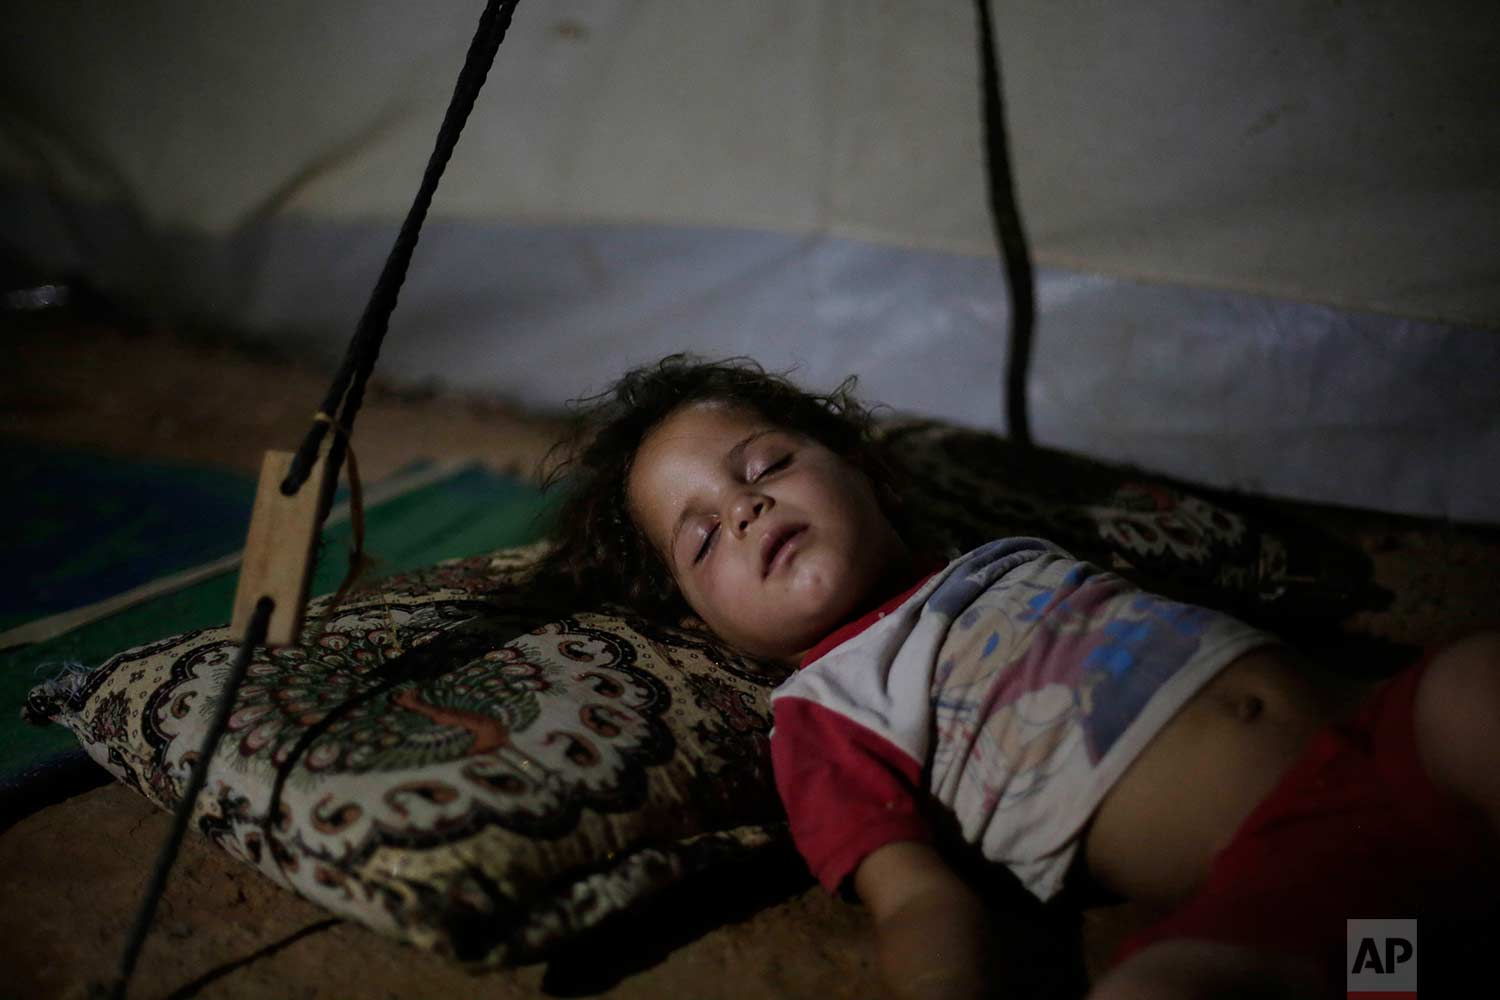 In this Wednesday, Aug. 2, 2017 photo, three year-old Saja Salih sleeps in her tent in the Hassan Sham camp for displaced people in Northern Iraq. Saja, her sister and both parents can't return to their home in Mosul because it was destroyed by an air strike. (AP Photo/Bram Janssen)